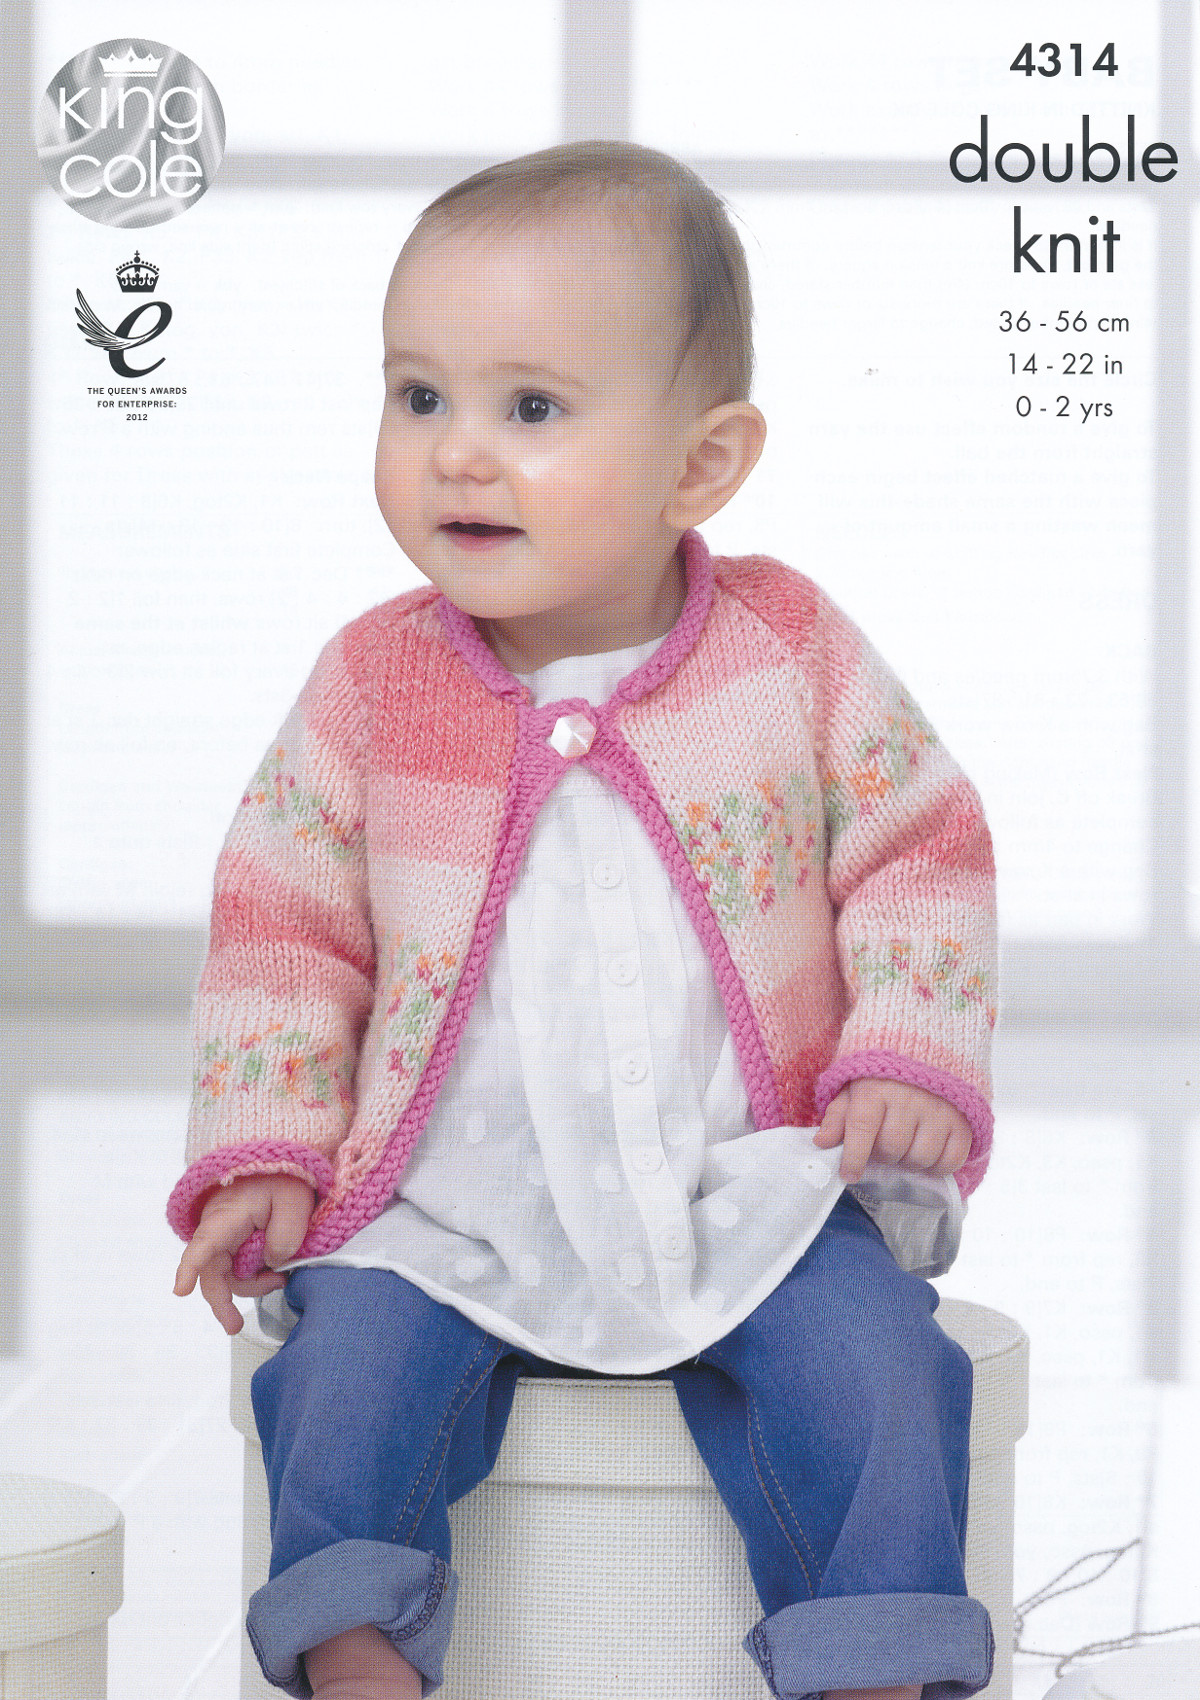 Baby drifter dk knitting pattern king cole cardigan waistcoat the yarn illustrated is king cole drifter for baby dk and cotton soft dk we have a range of yarn available to purchase on separate listings bankloansurffo Image collections